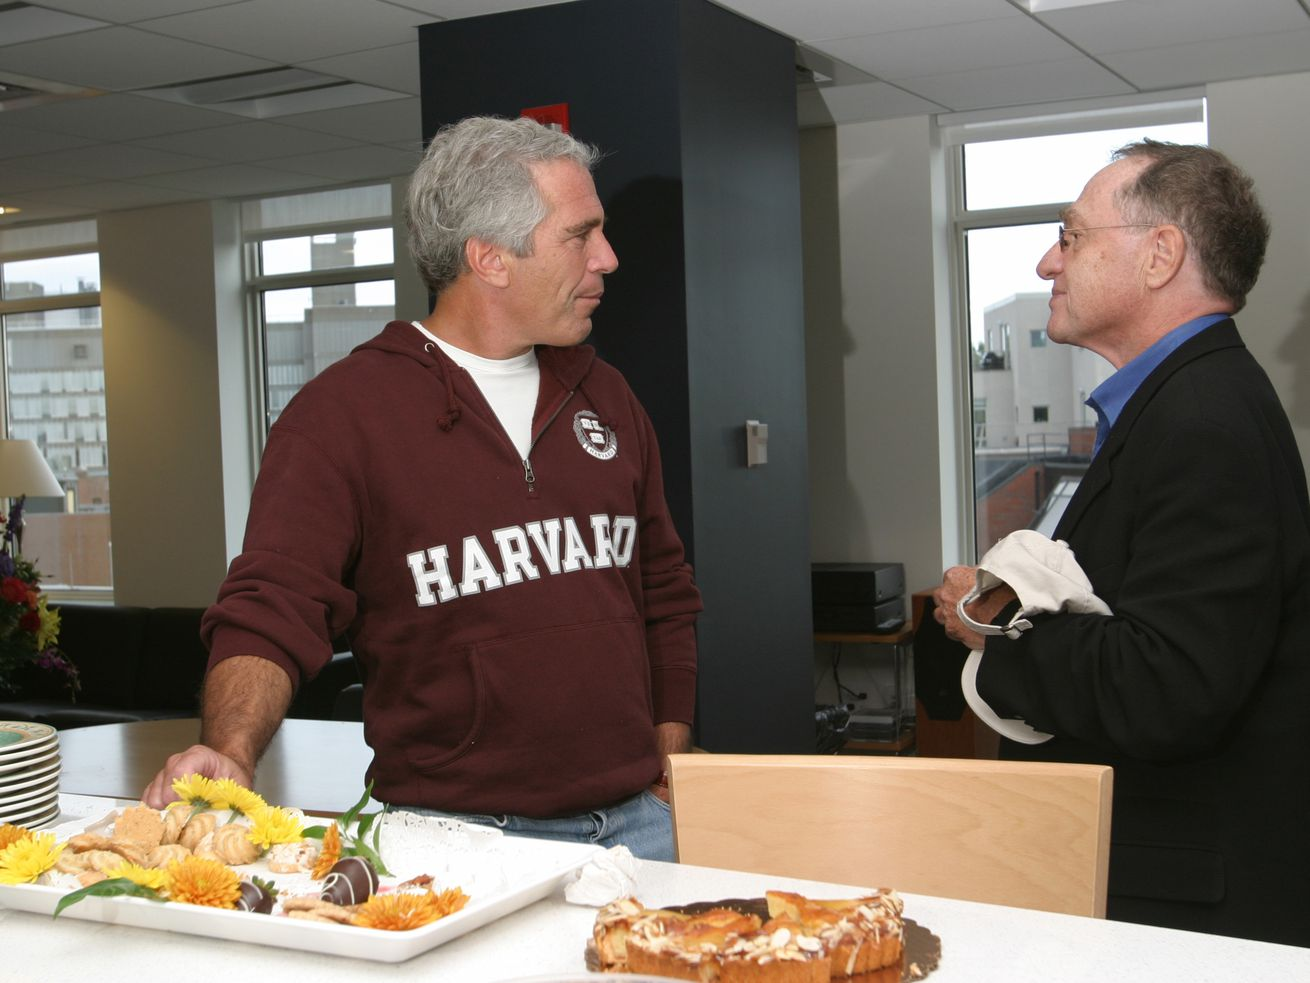 In this photograph from 2004, convicted sex offender Jeffrey Epstein speaks with then-Harvard professor Alan Dershowitz, who would later serve on Epstein's defense team.